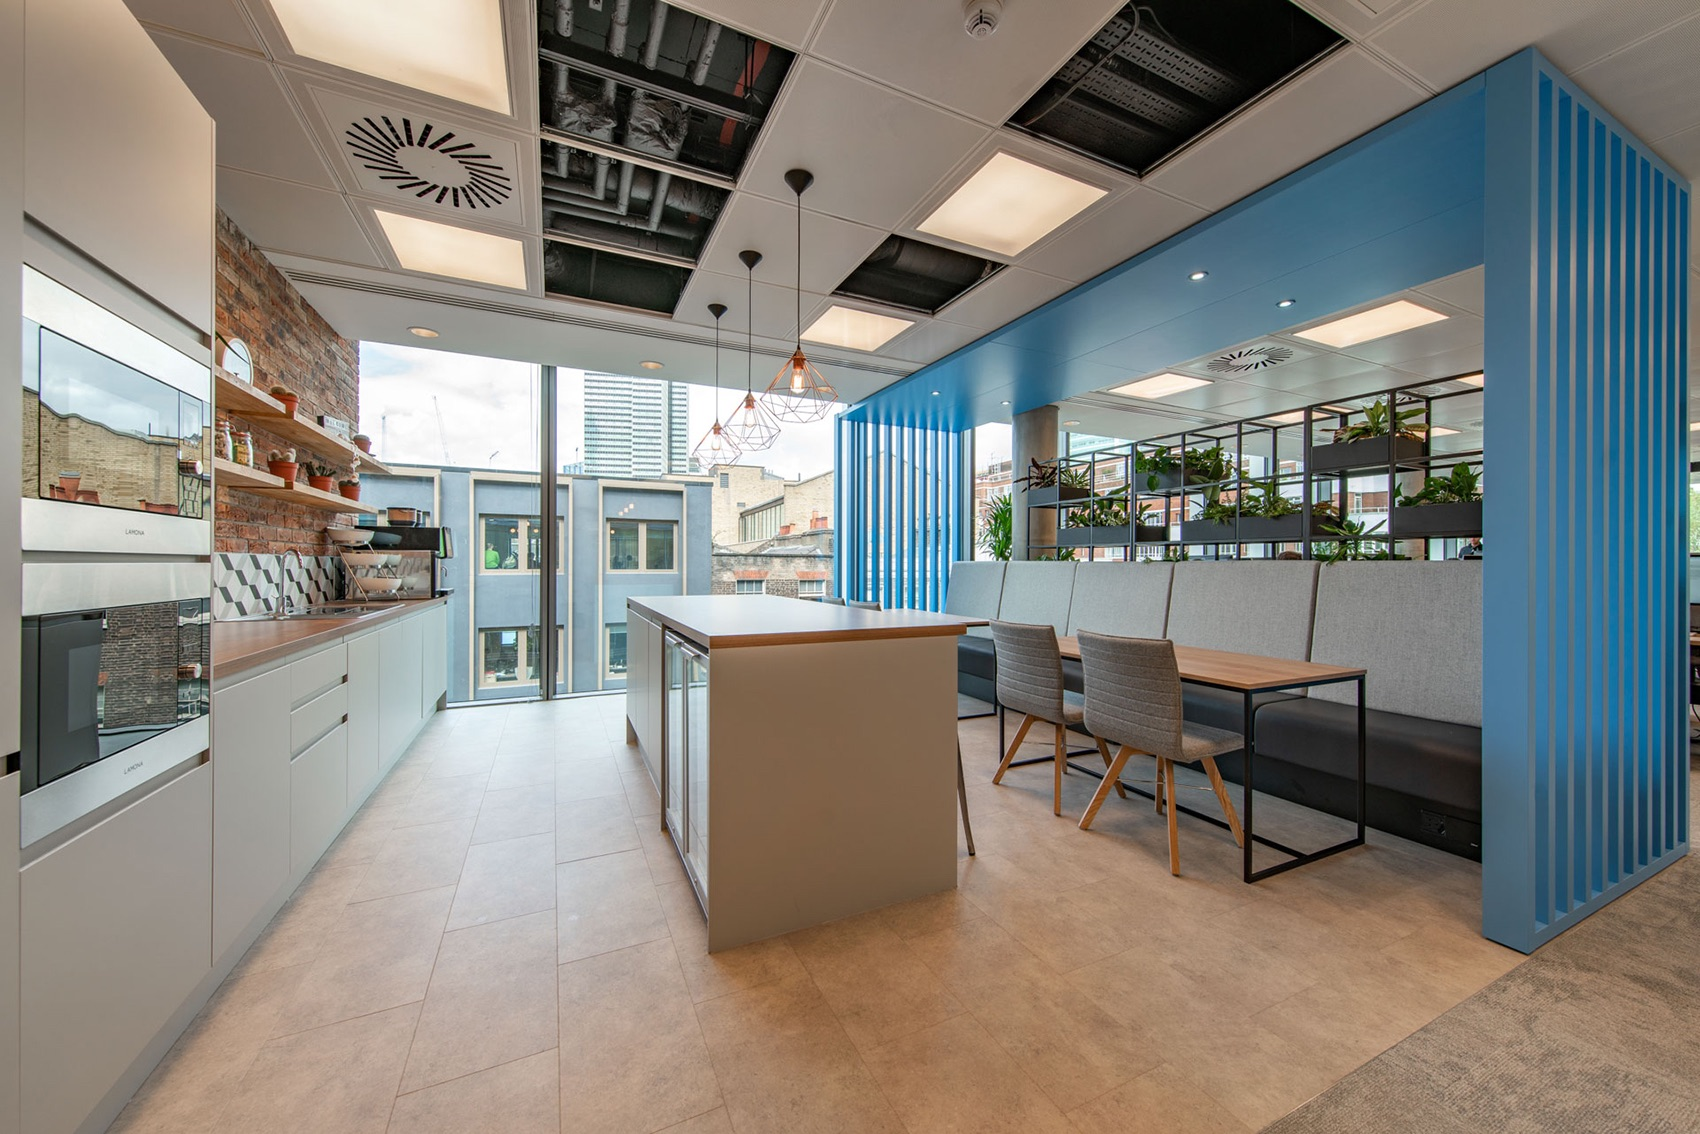 tomtom-london-office-9